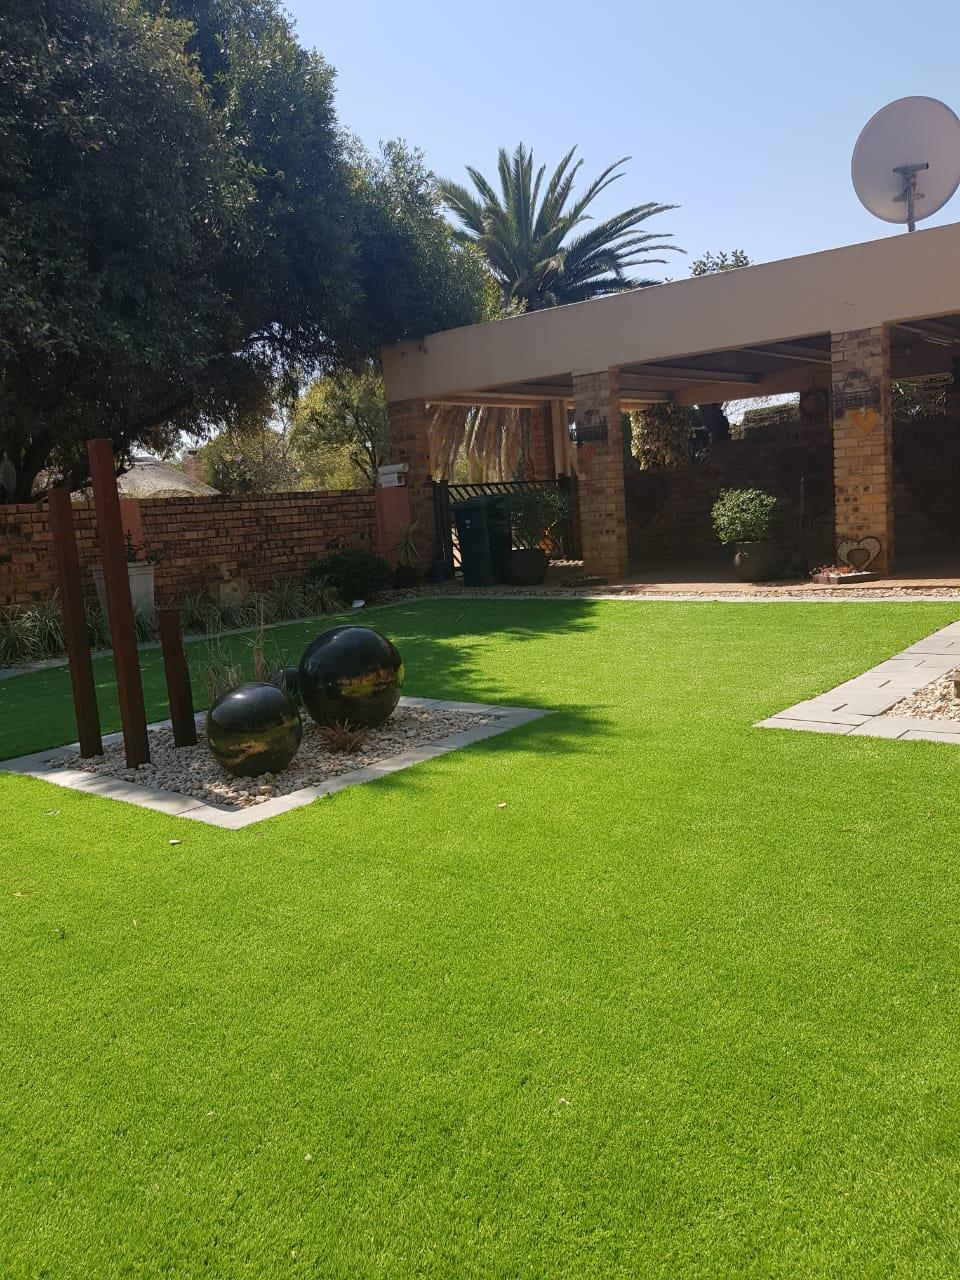 2 Bedroom Townhouse For Sale in Stilfontein